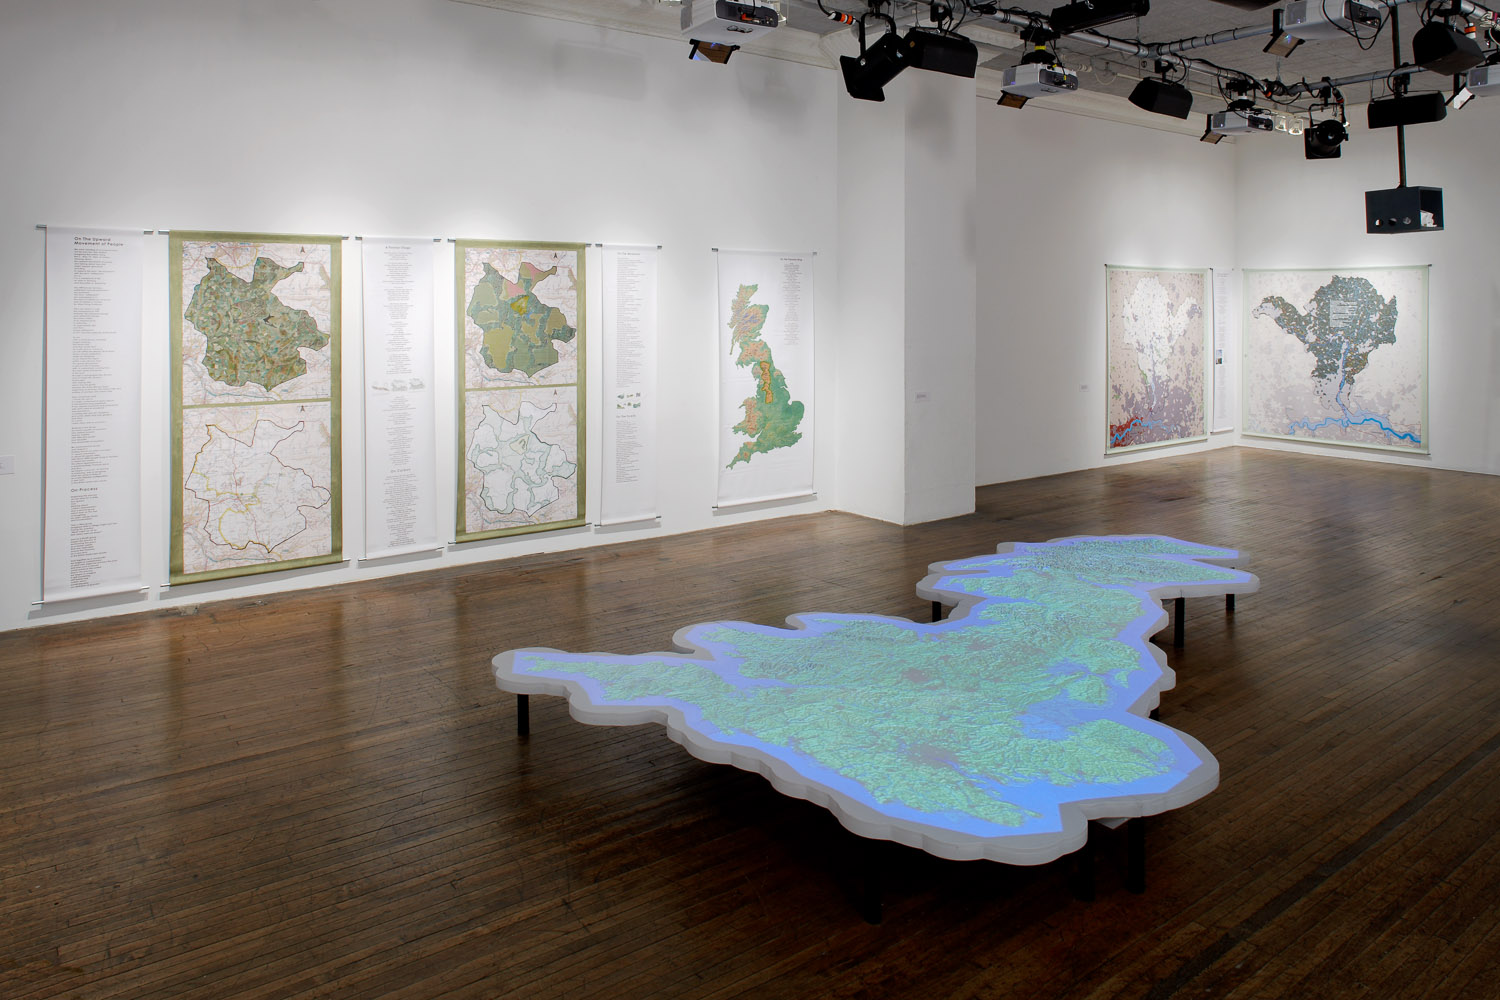 Harrisons-South-Gallery-Installation-view-3-2009